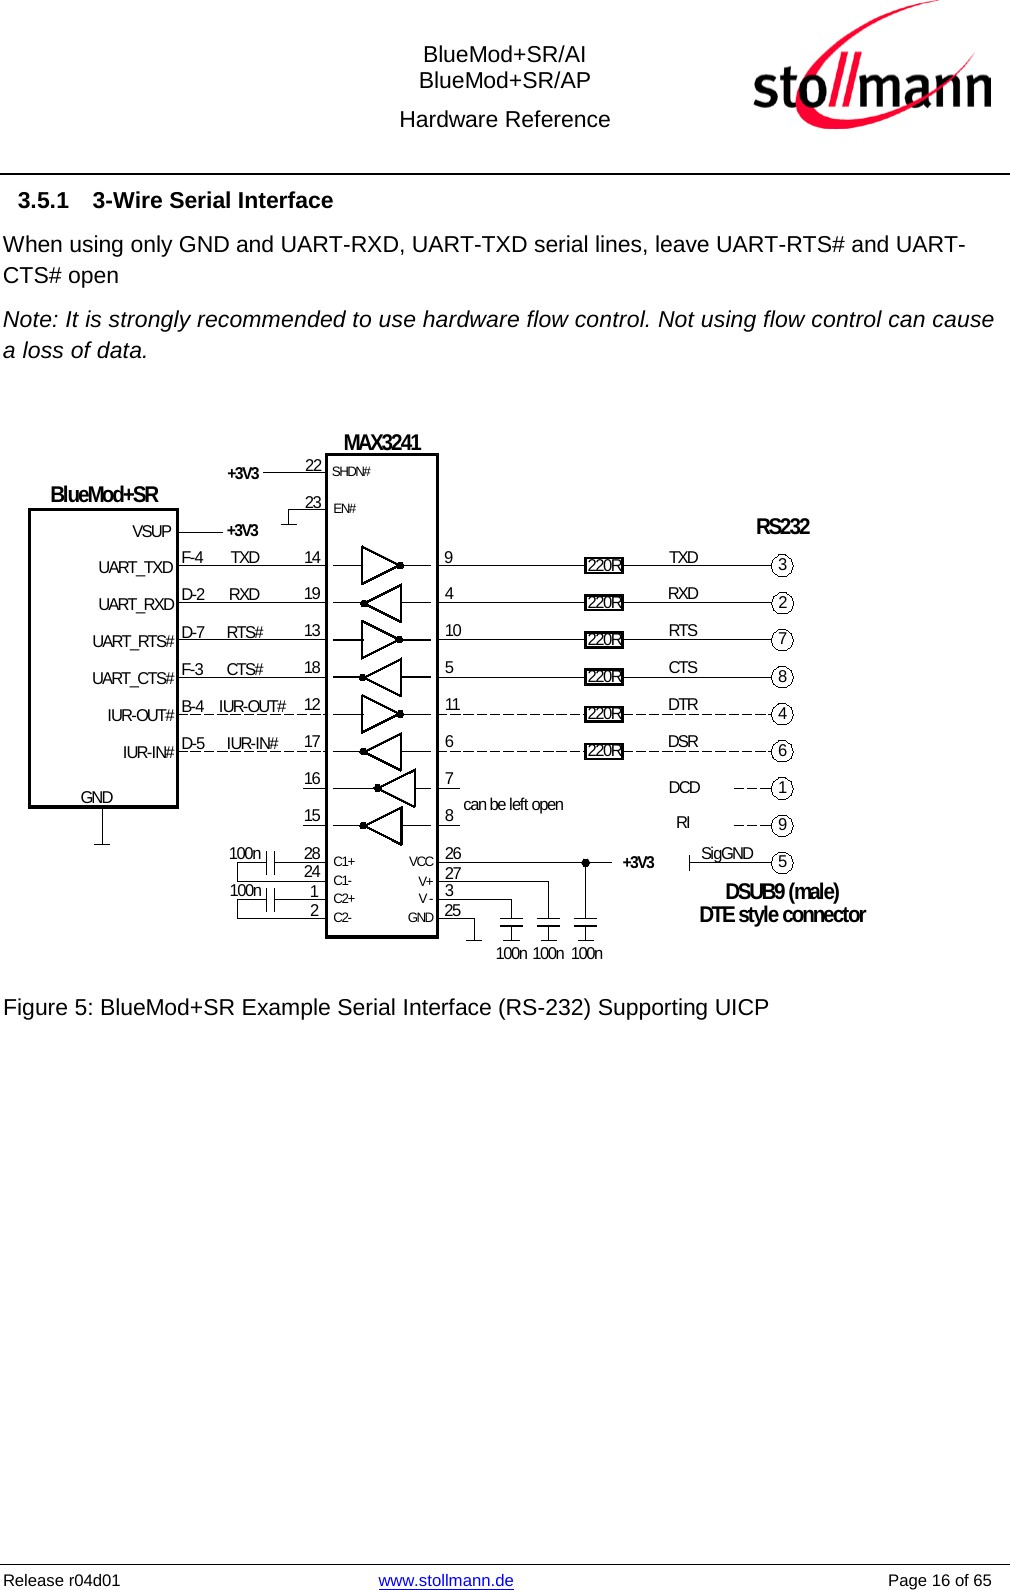 Network Interface Device Wiring Diagram from mainetreasurechest.com